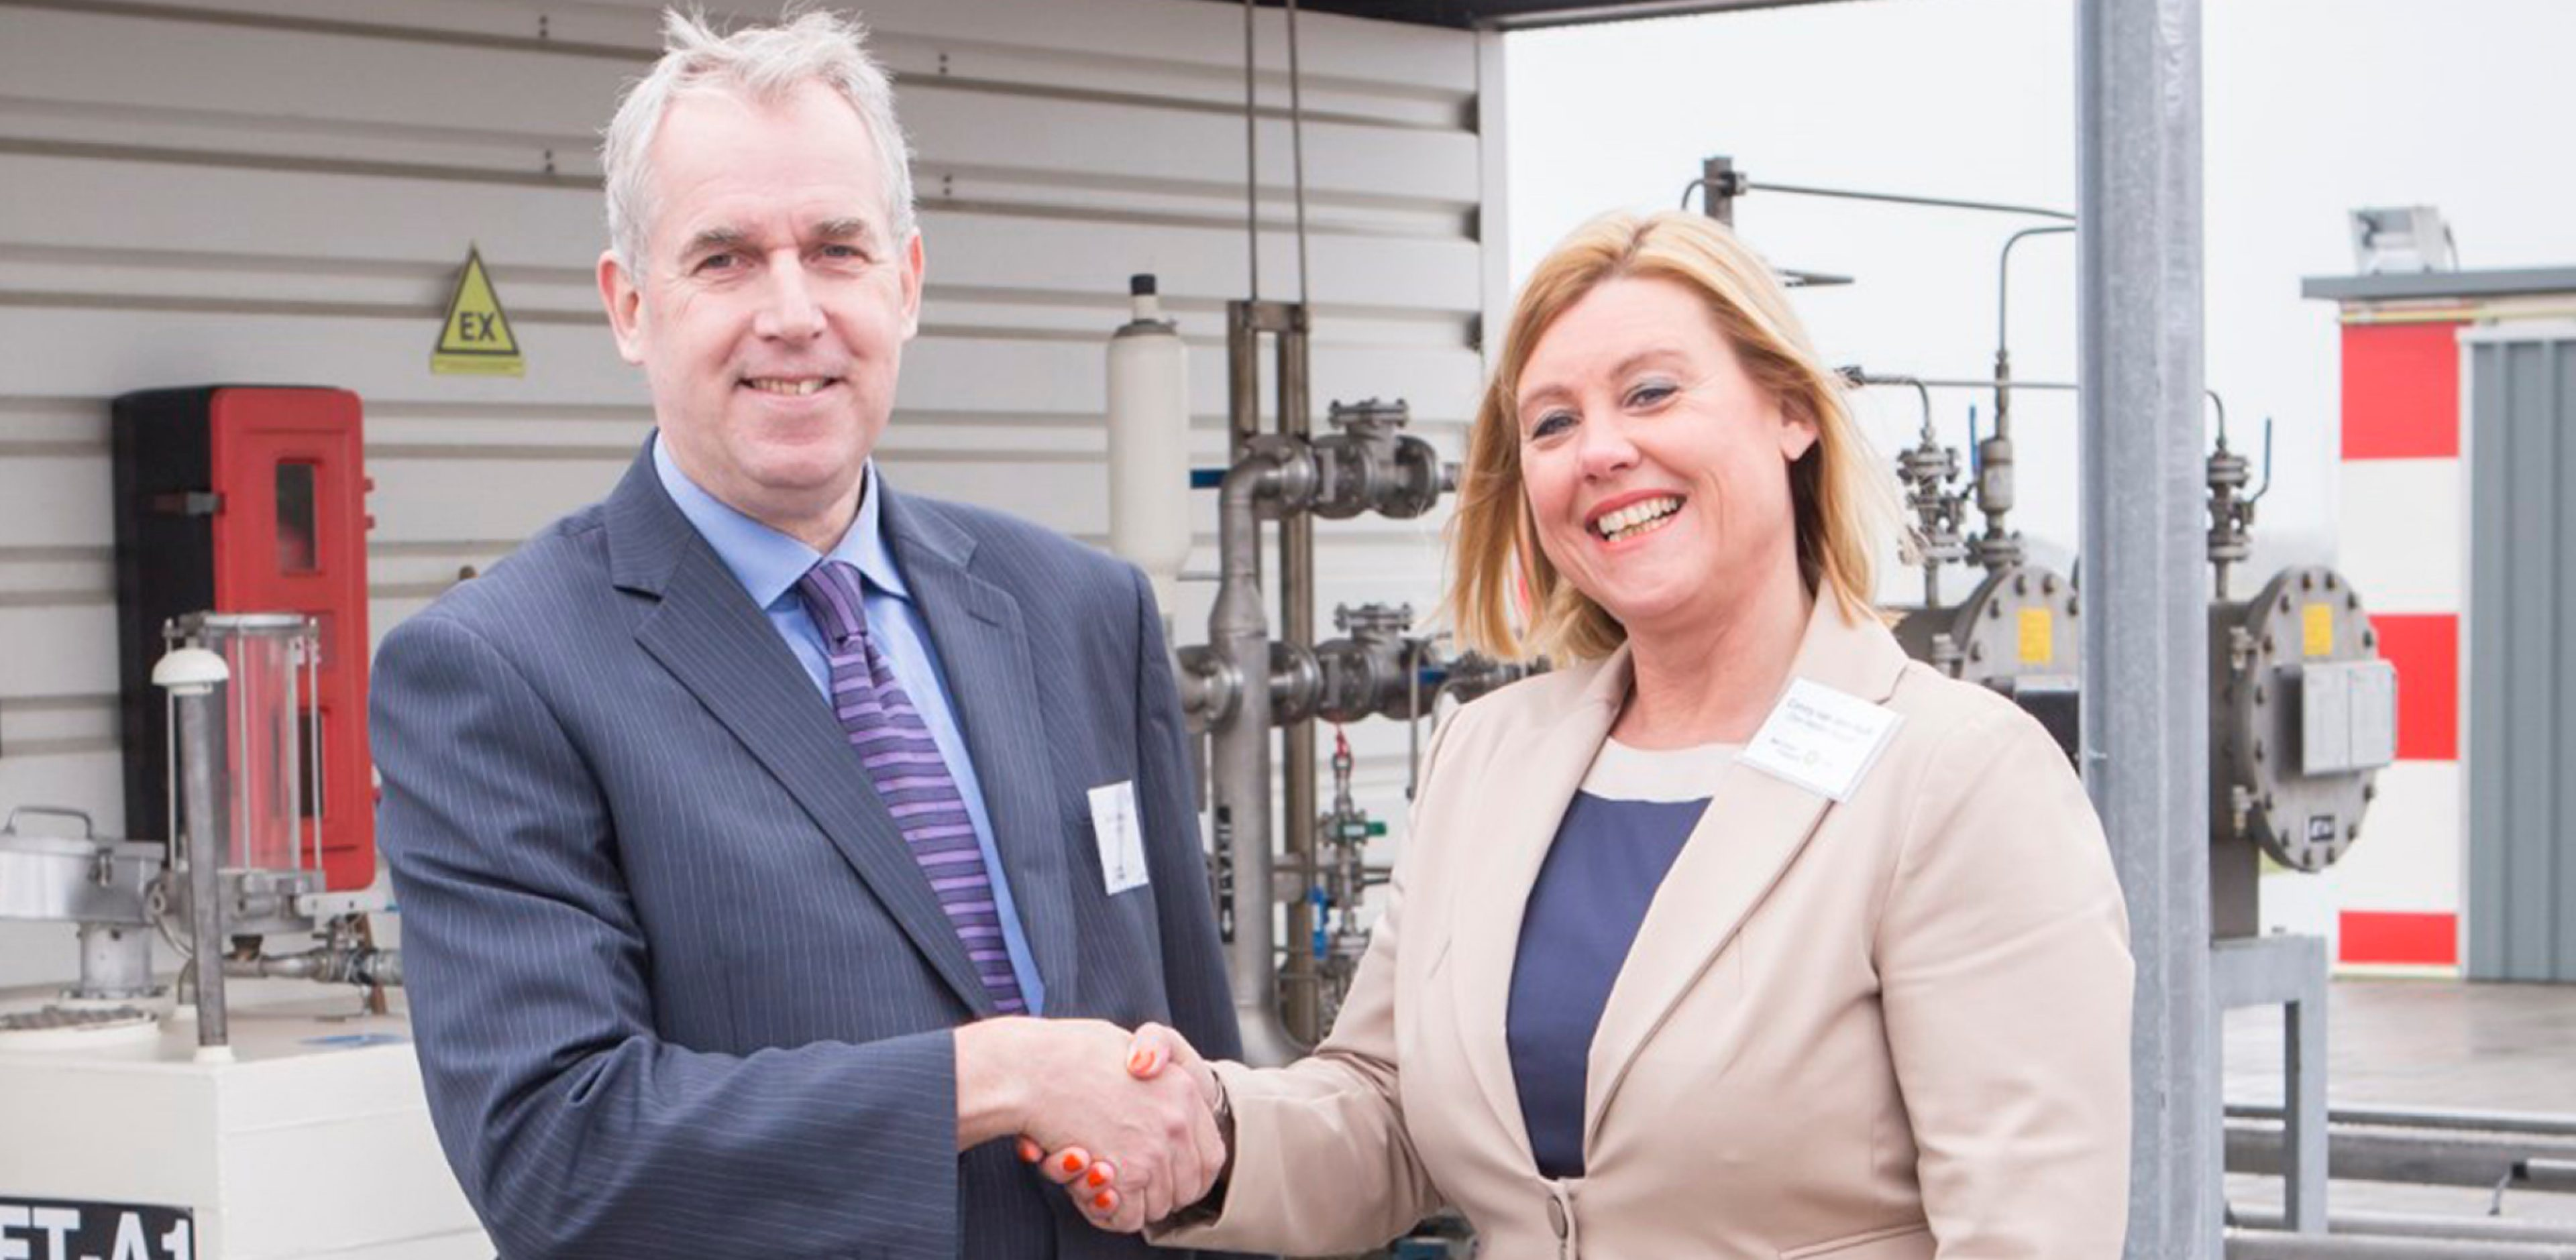 David Gilmour Air BP CEO with Conny van den Hoff Director Den Held